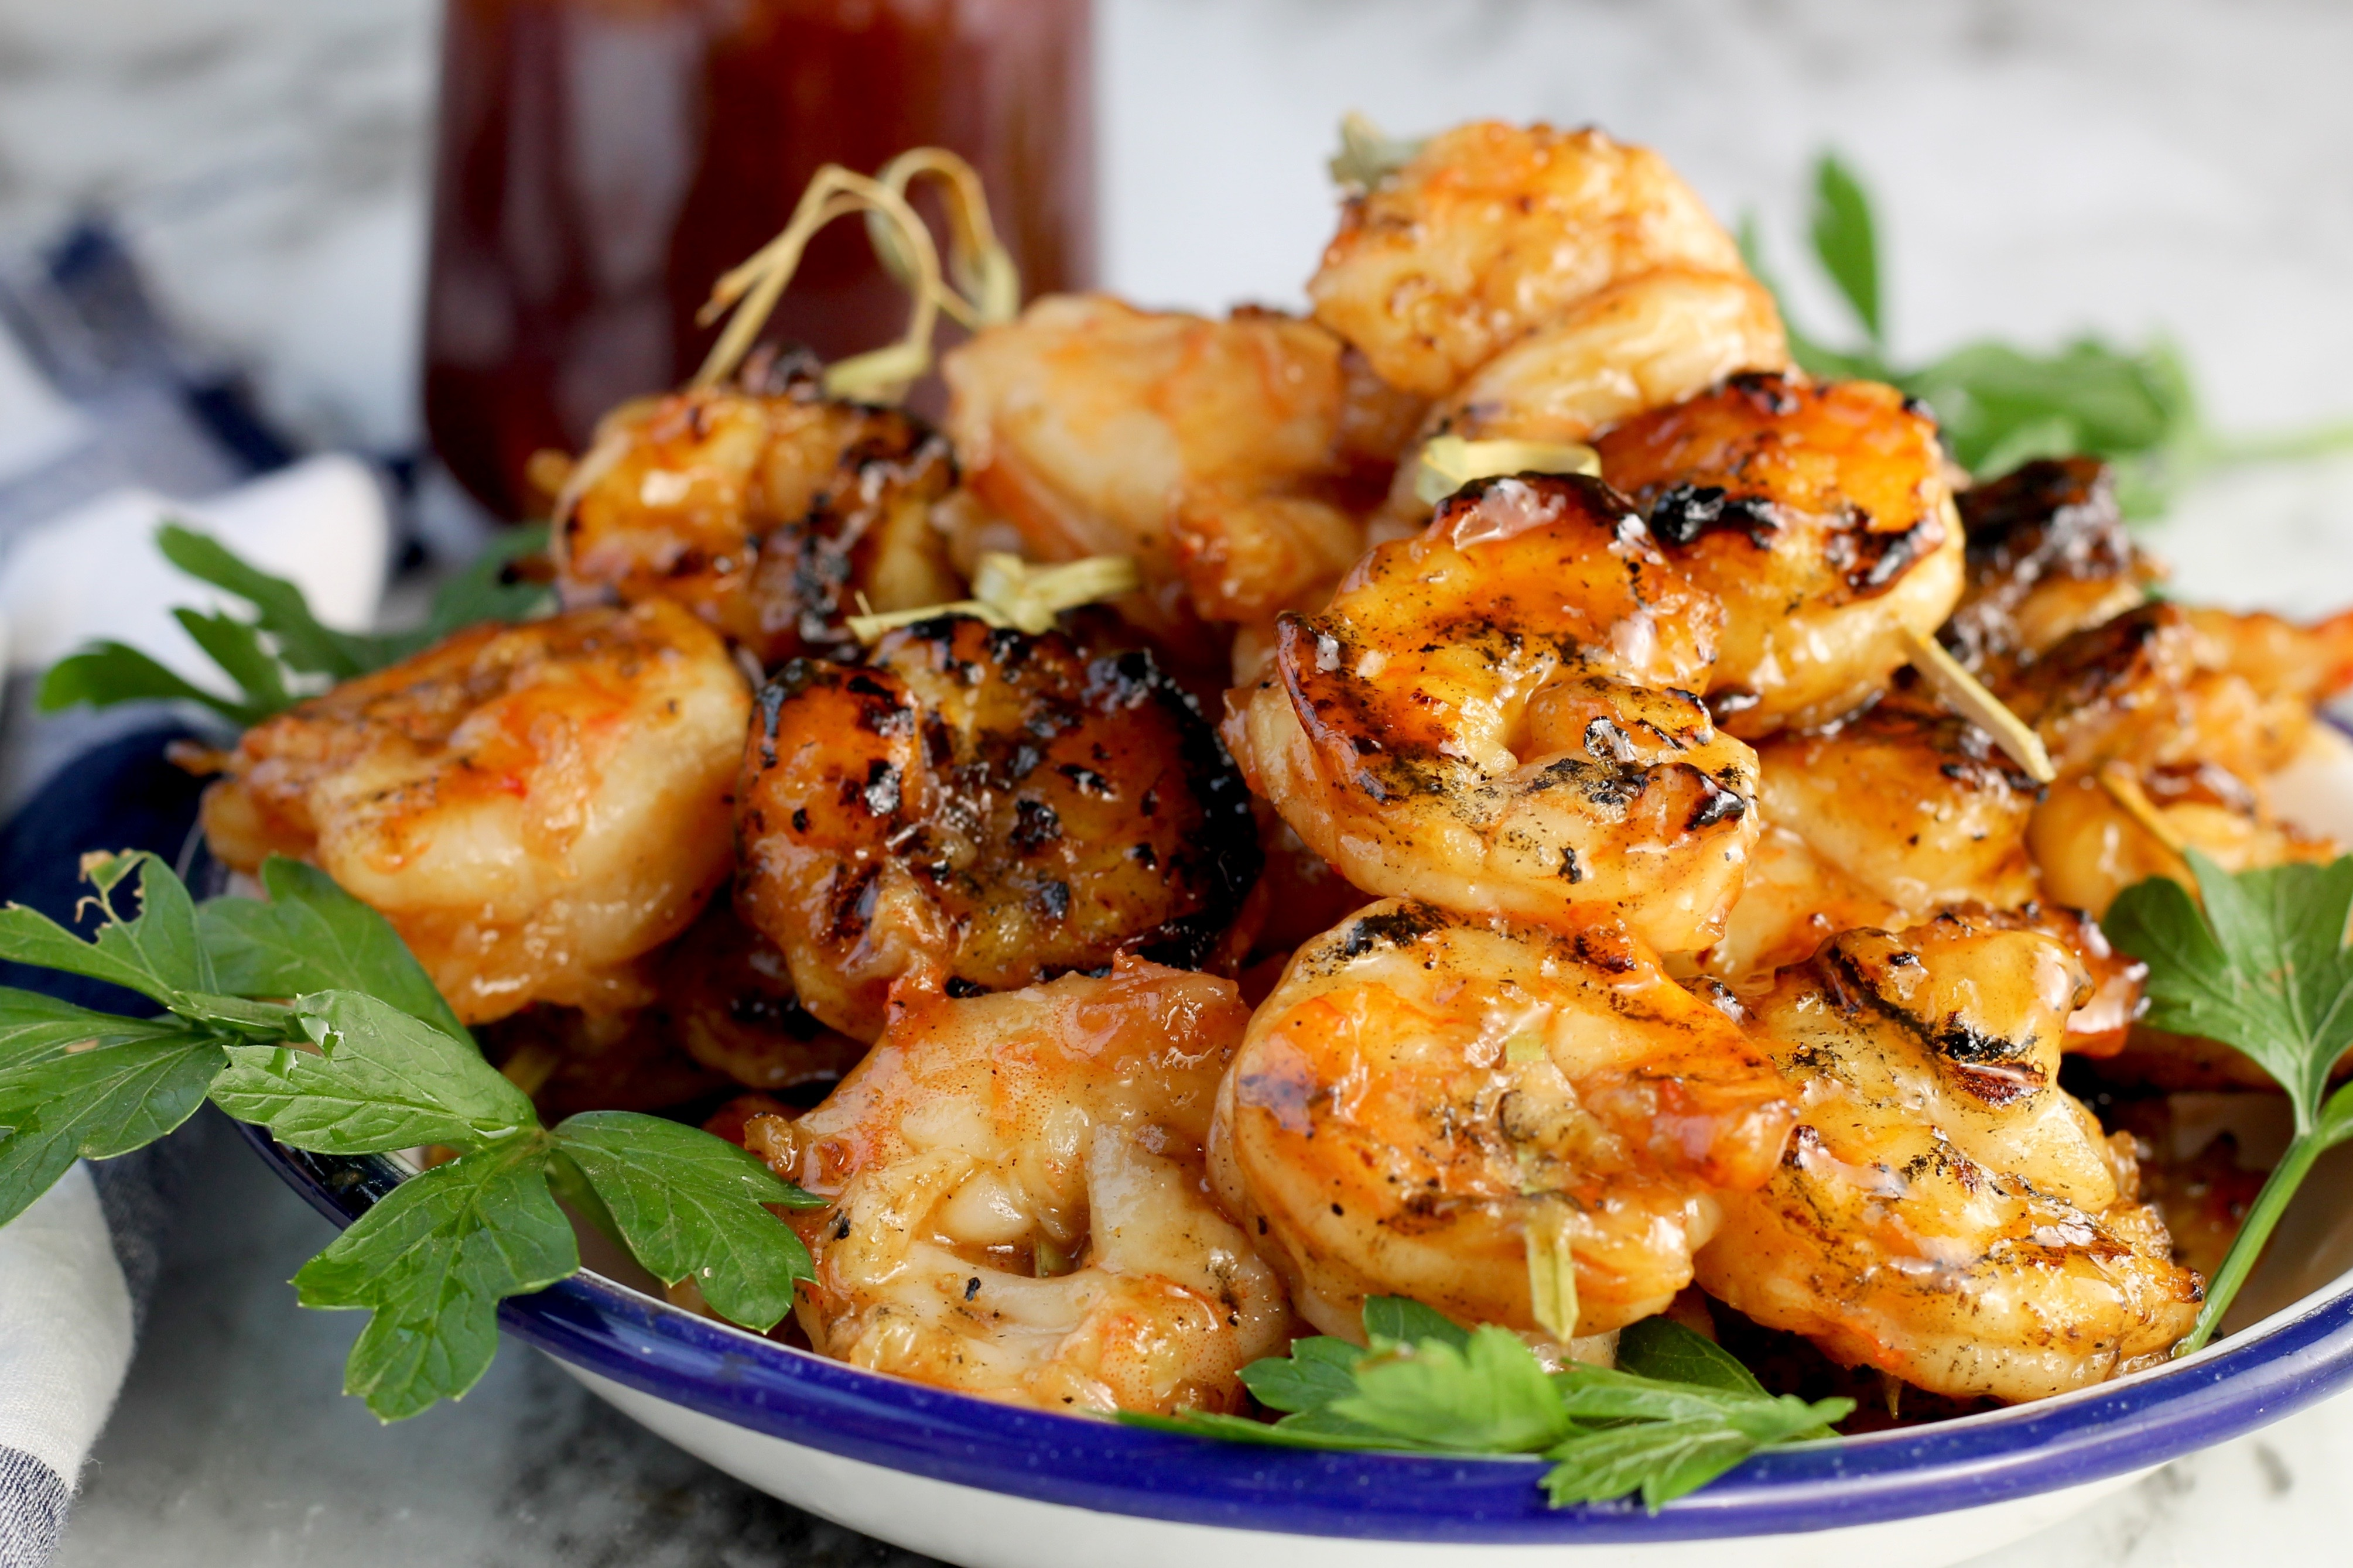 How to Make Barbecue Grilled Shrimp